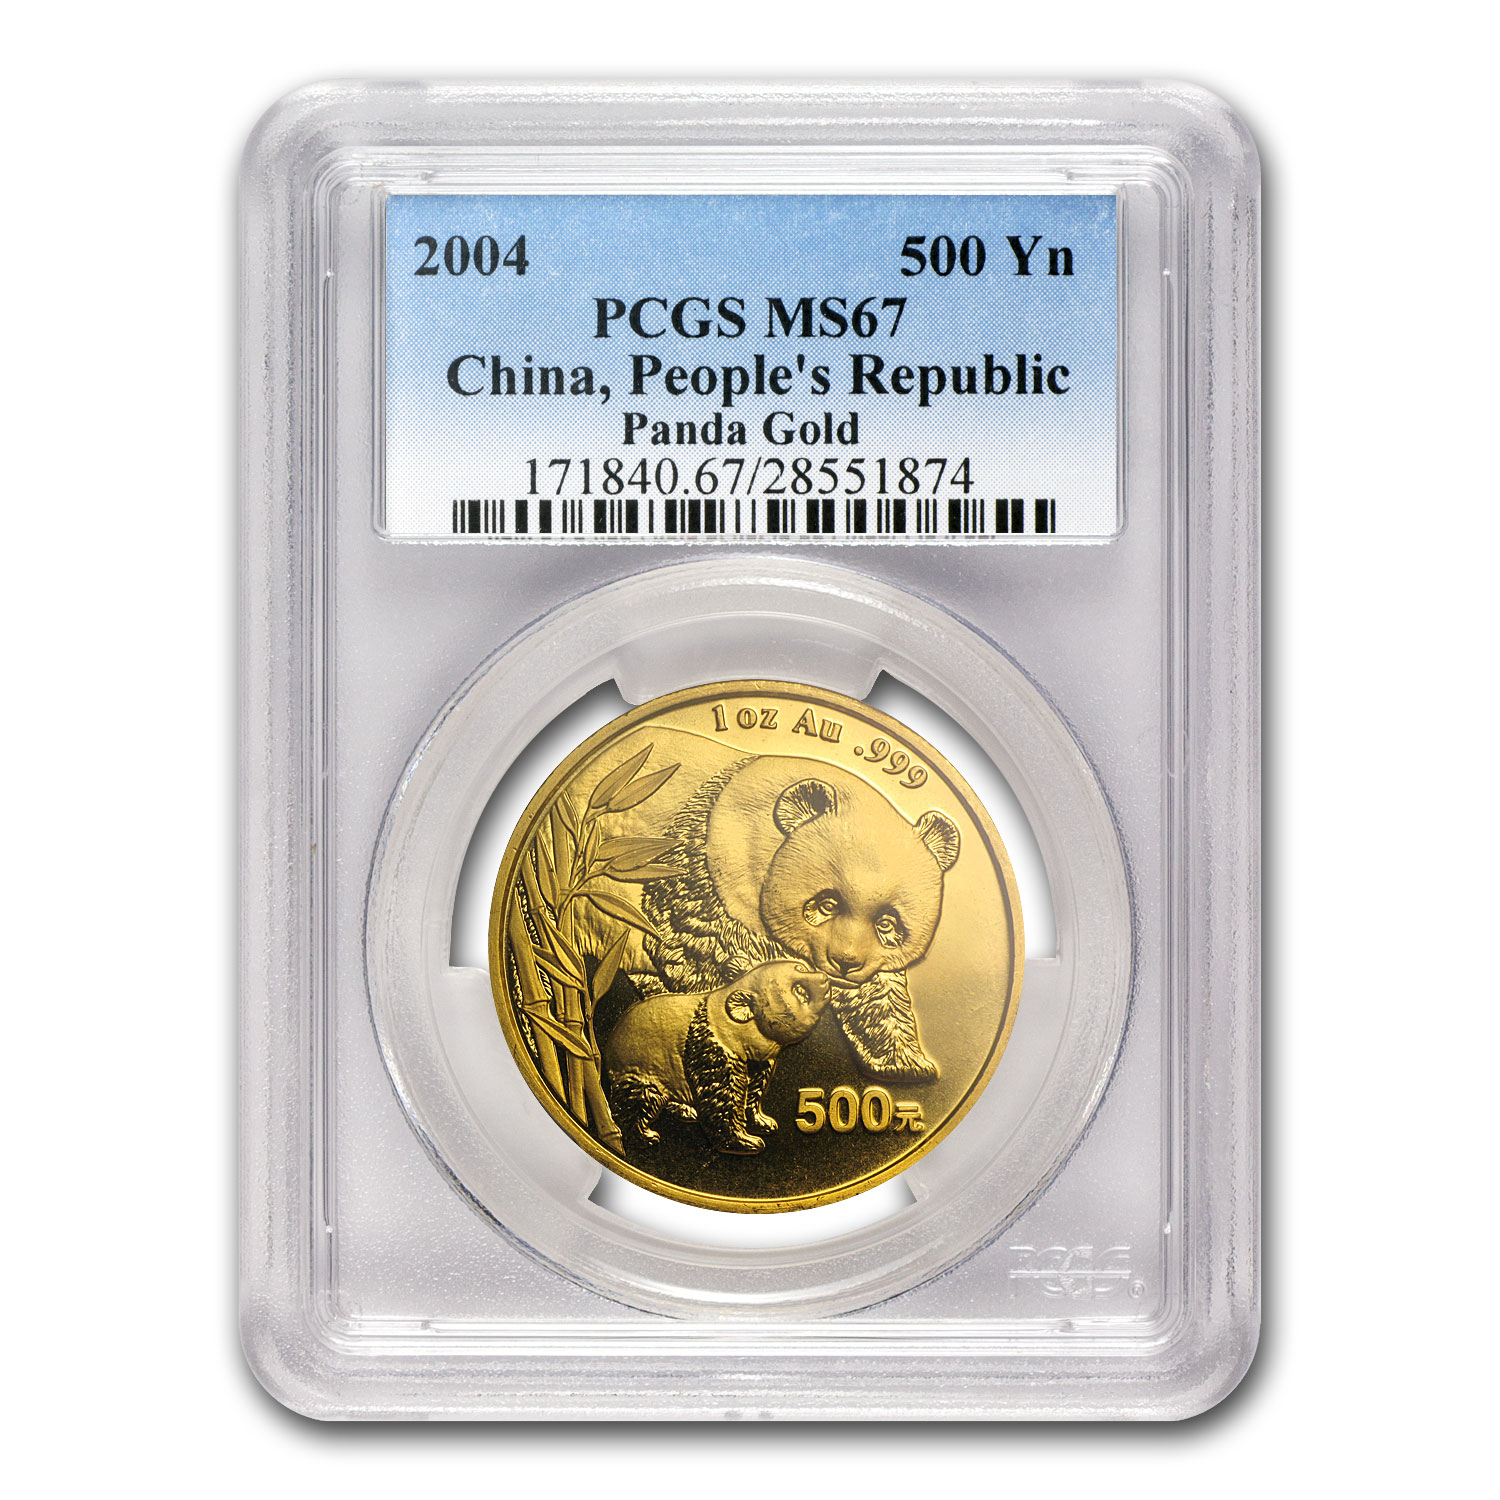 2004 China 1 oz Gold Panda MS-67 PCGS